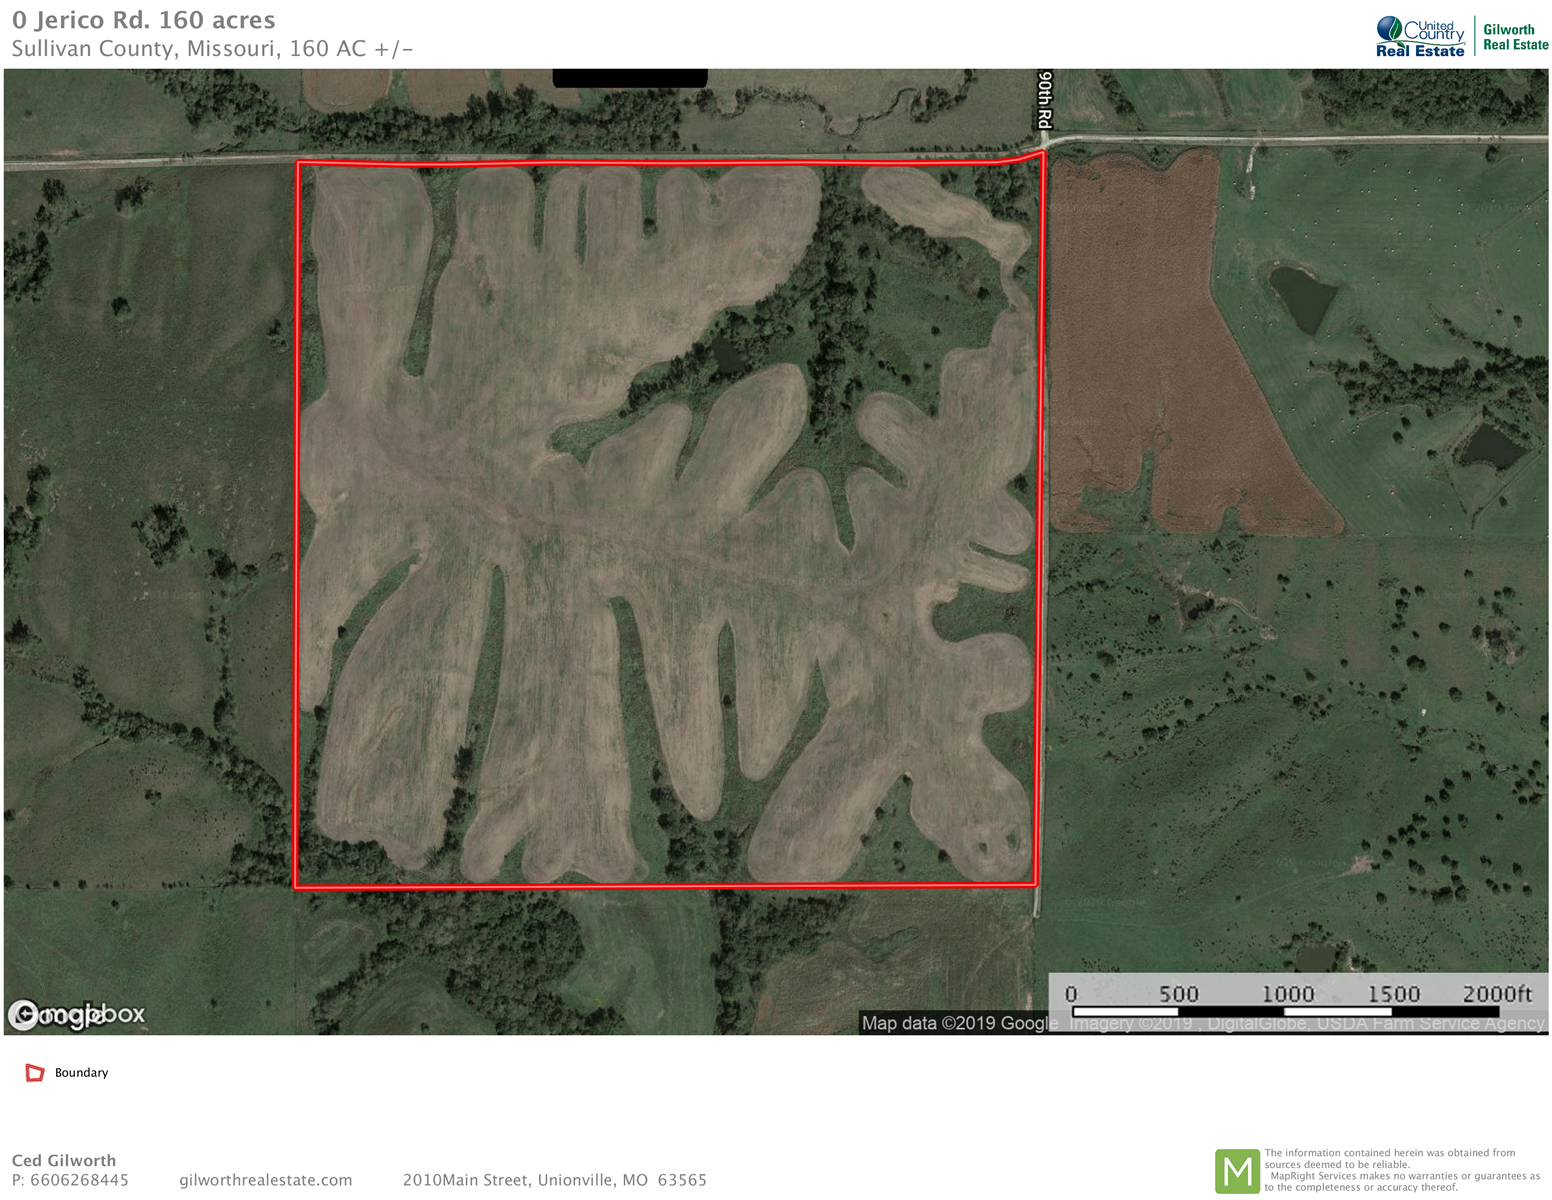 Hay/Pasture farm for sale in Northwest Sullivan Co, Missouri